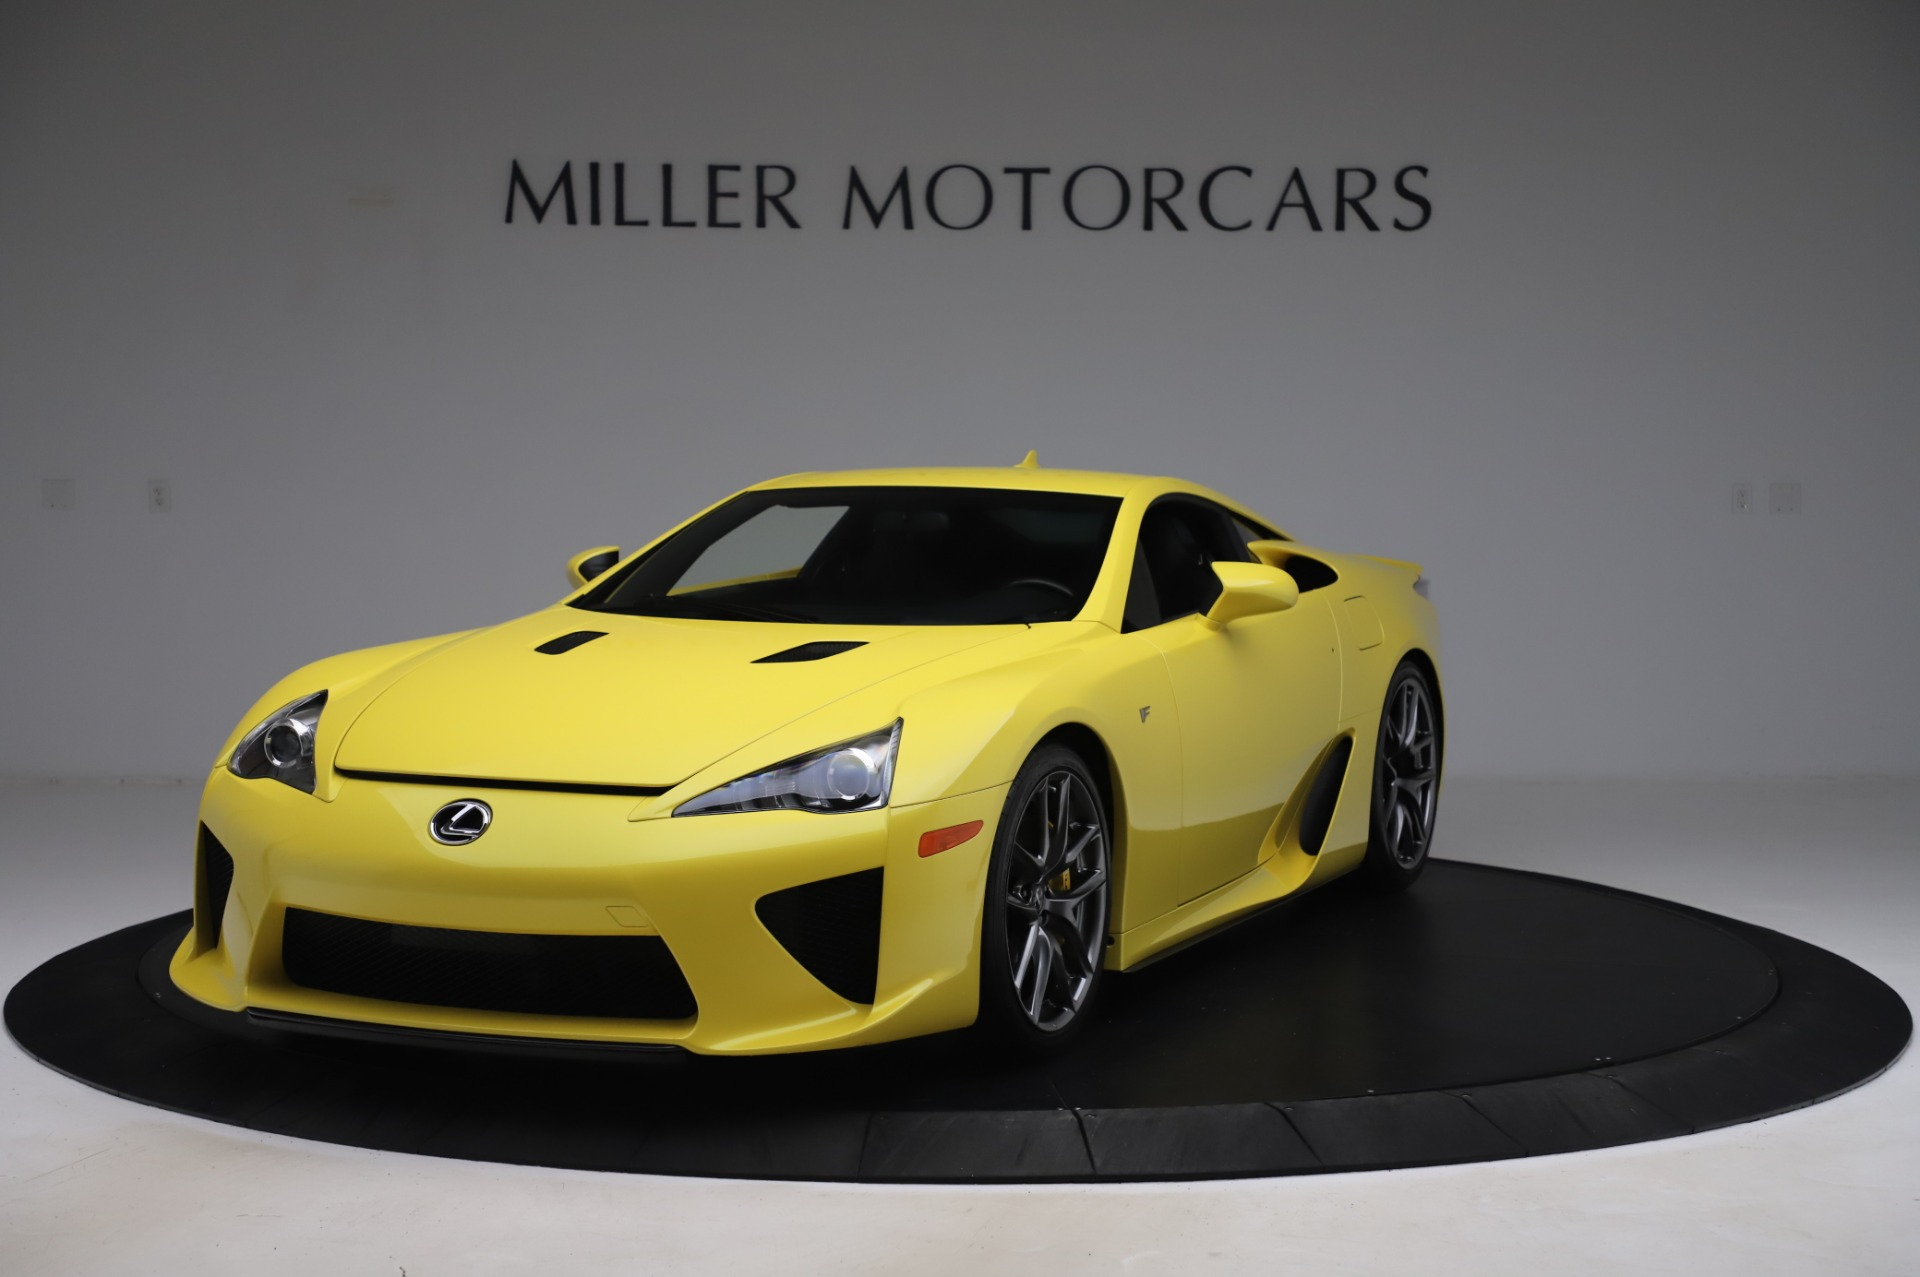 Used 2012 Lexus LFA for sale $509,900 at Bentley Greenwich in Greenwich CT 06830 1